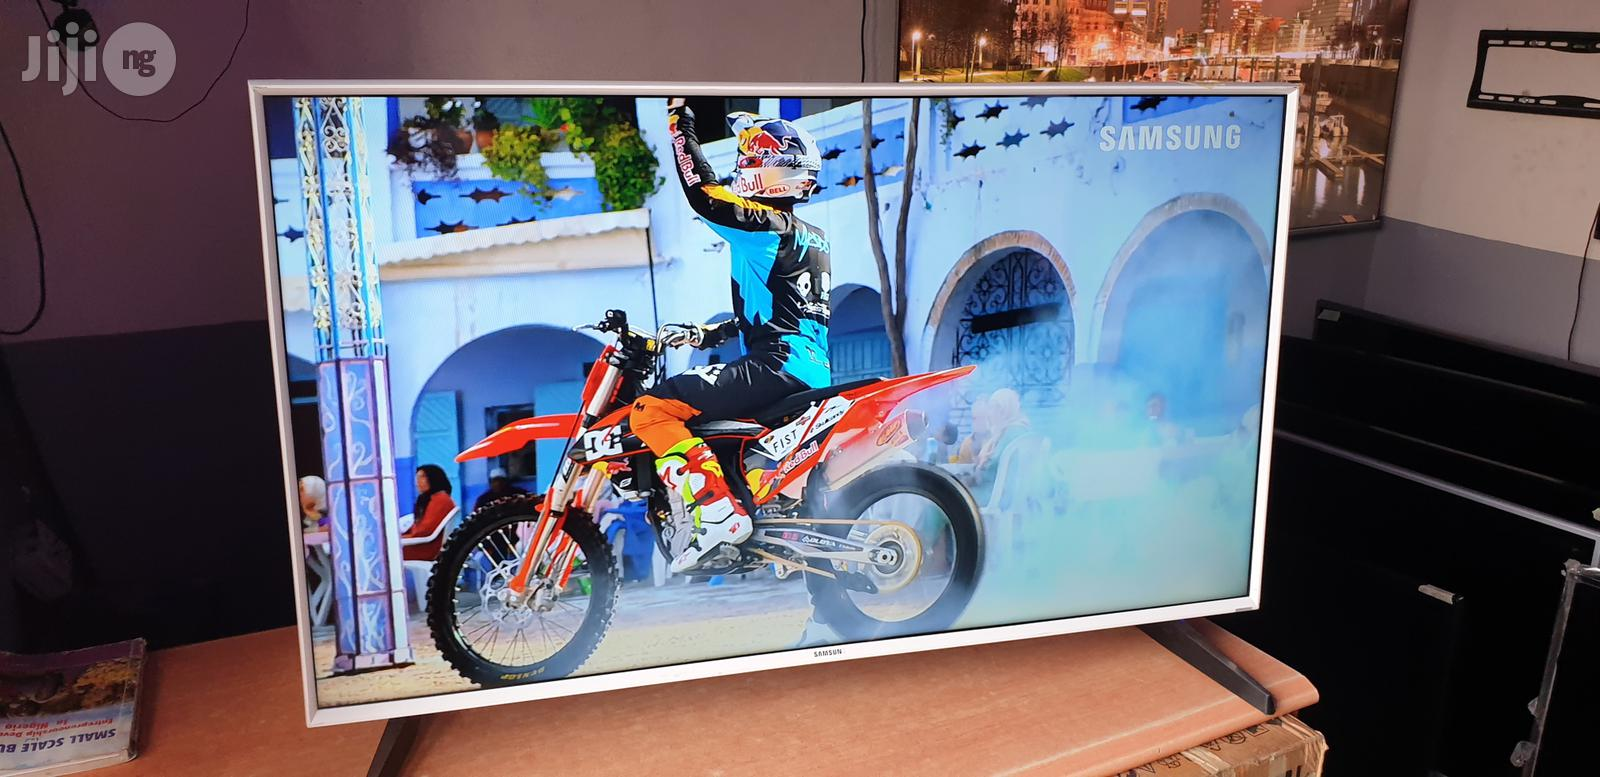 Samsung Smart Full HD Led TV 40 Inches   TV & DVD Equipment for sale in Ojo, Lagos State, Nigeria